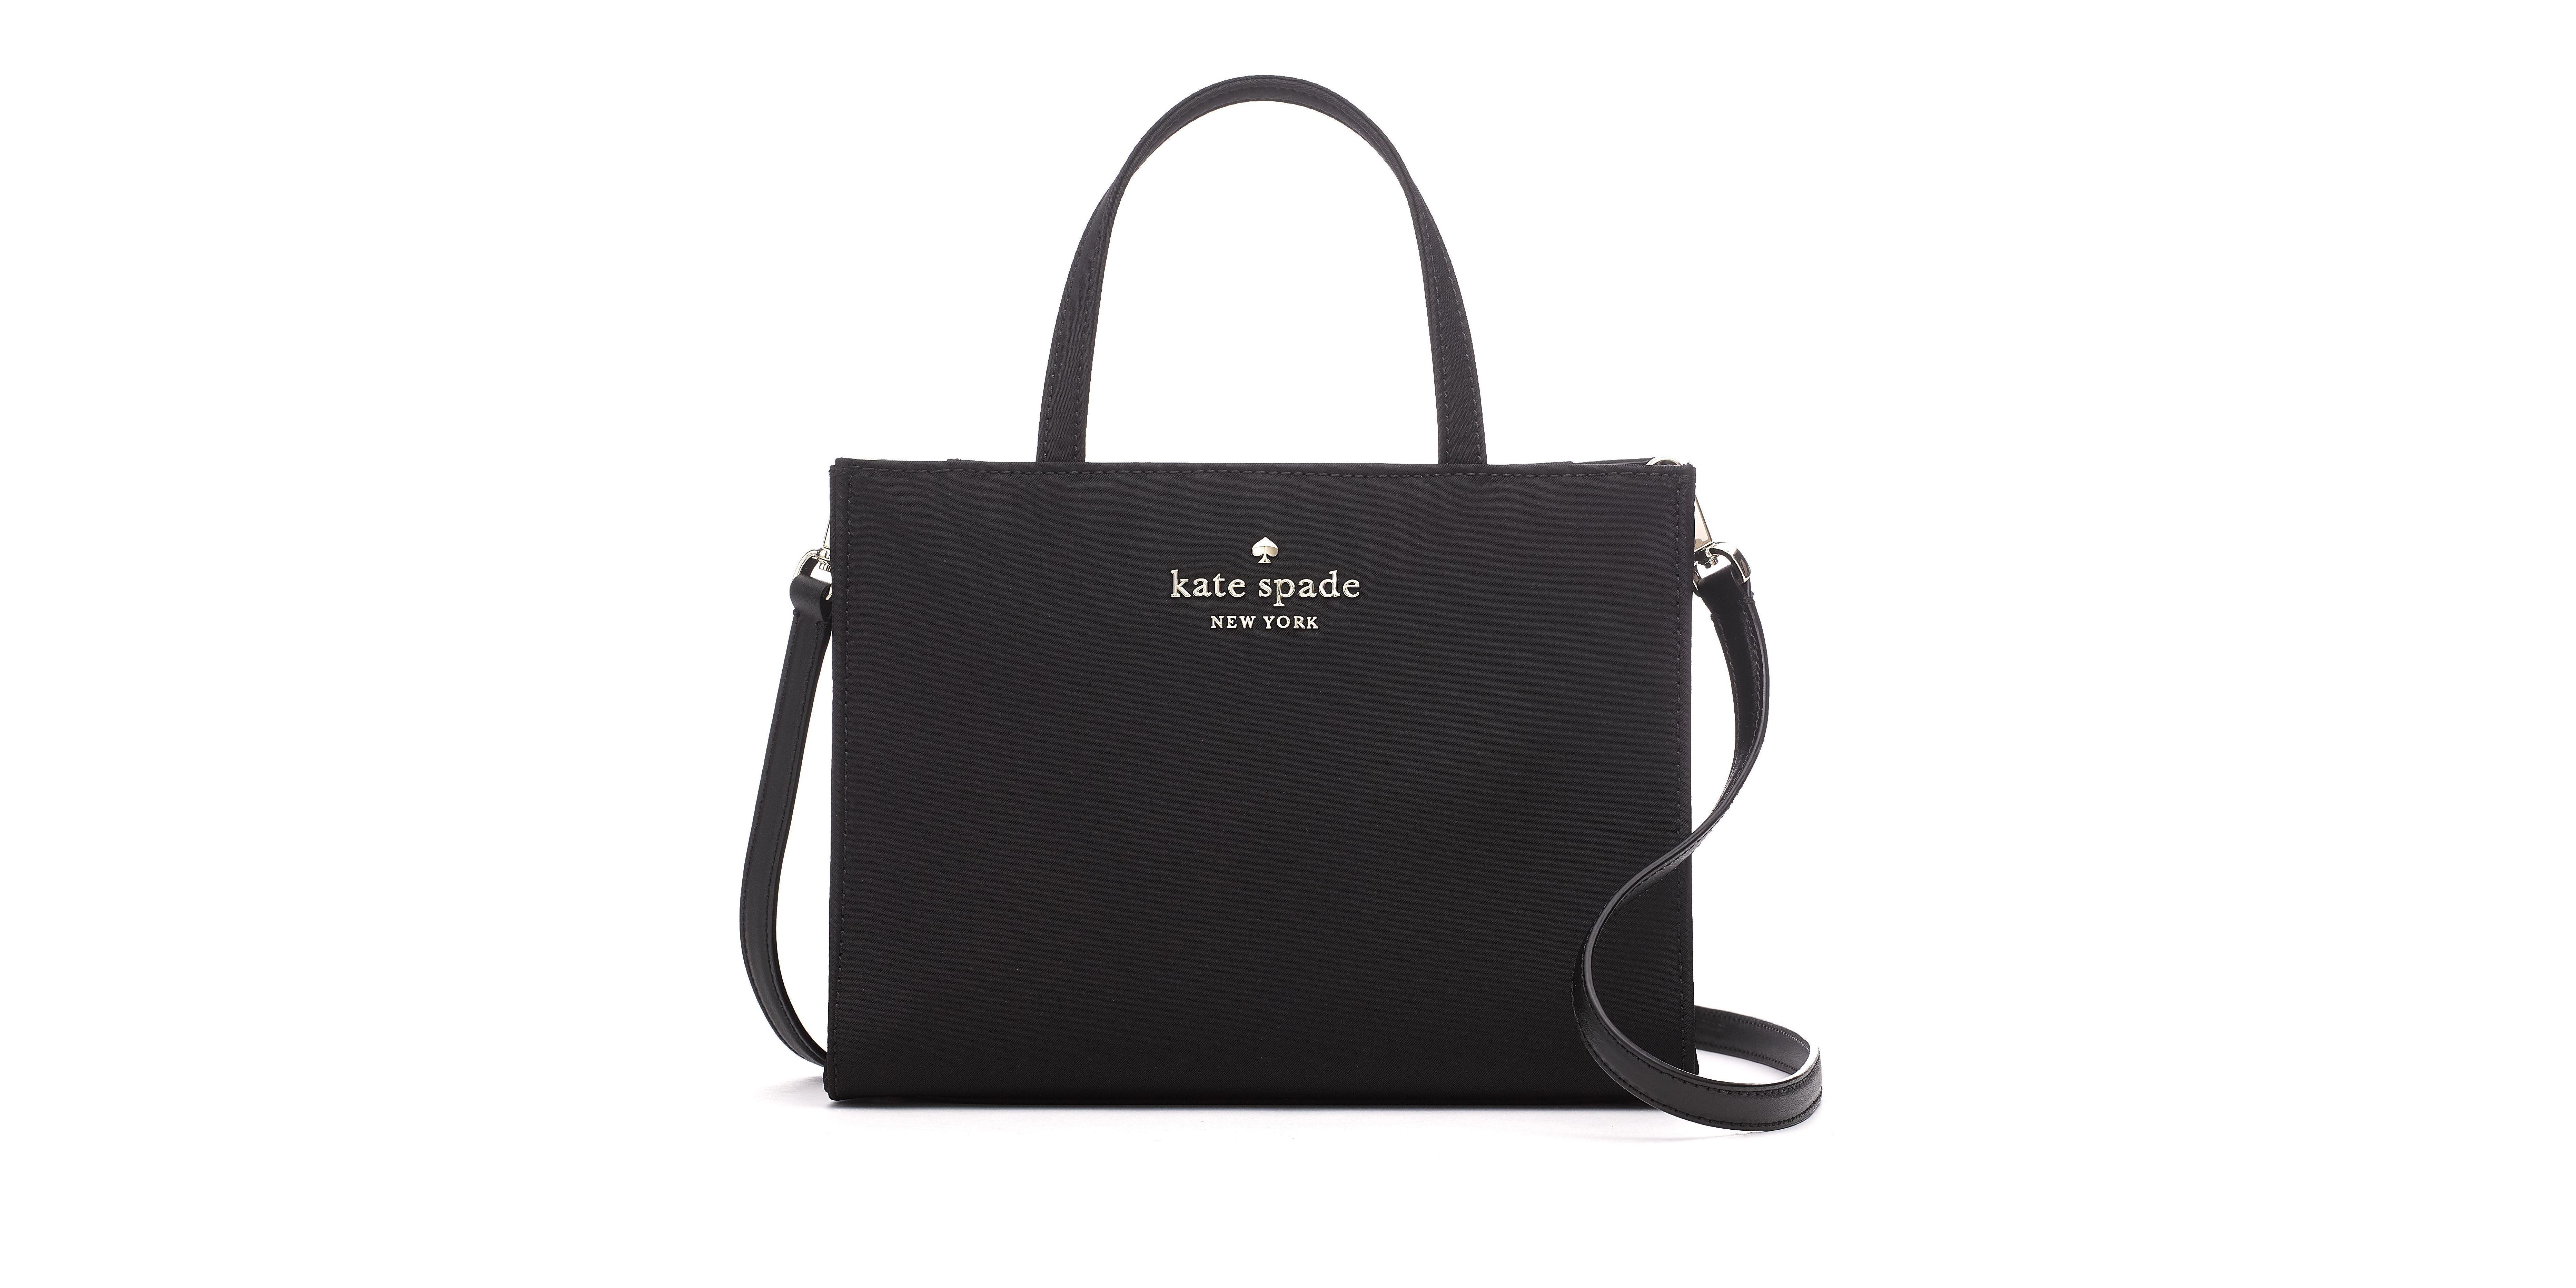 Kate Spade Is Reissuing the Box Bag from Your Youth 3072bf207508e